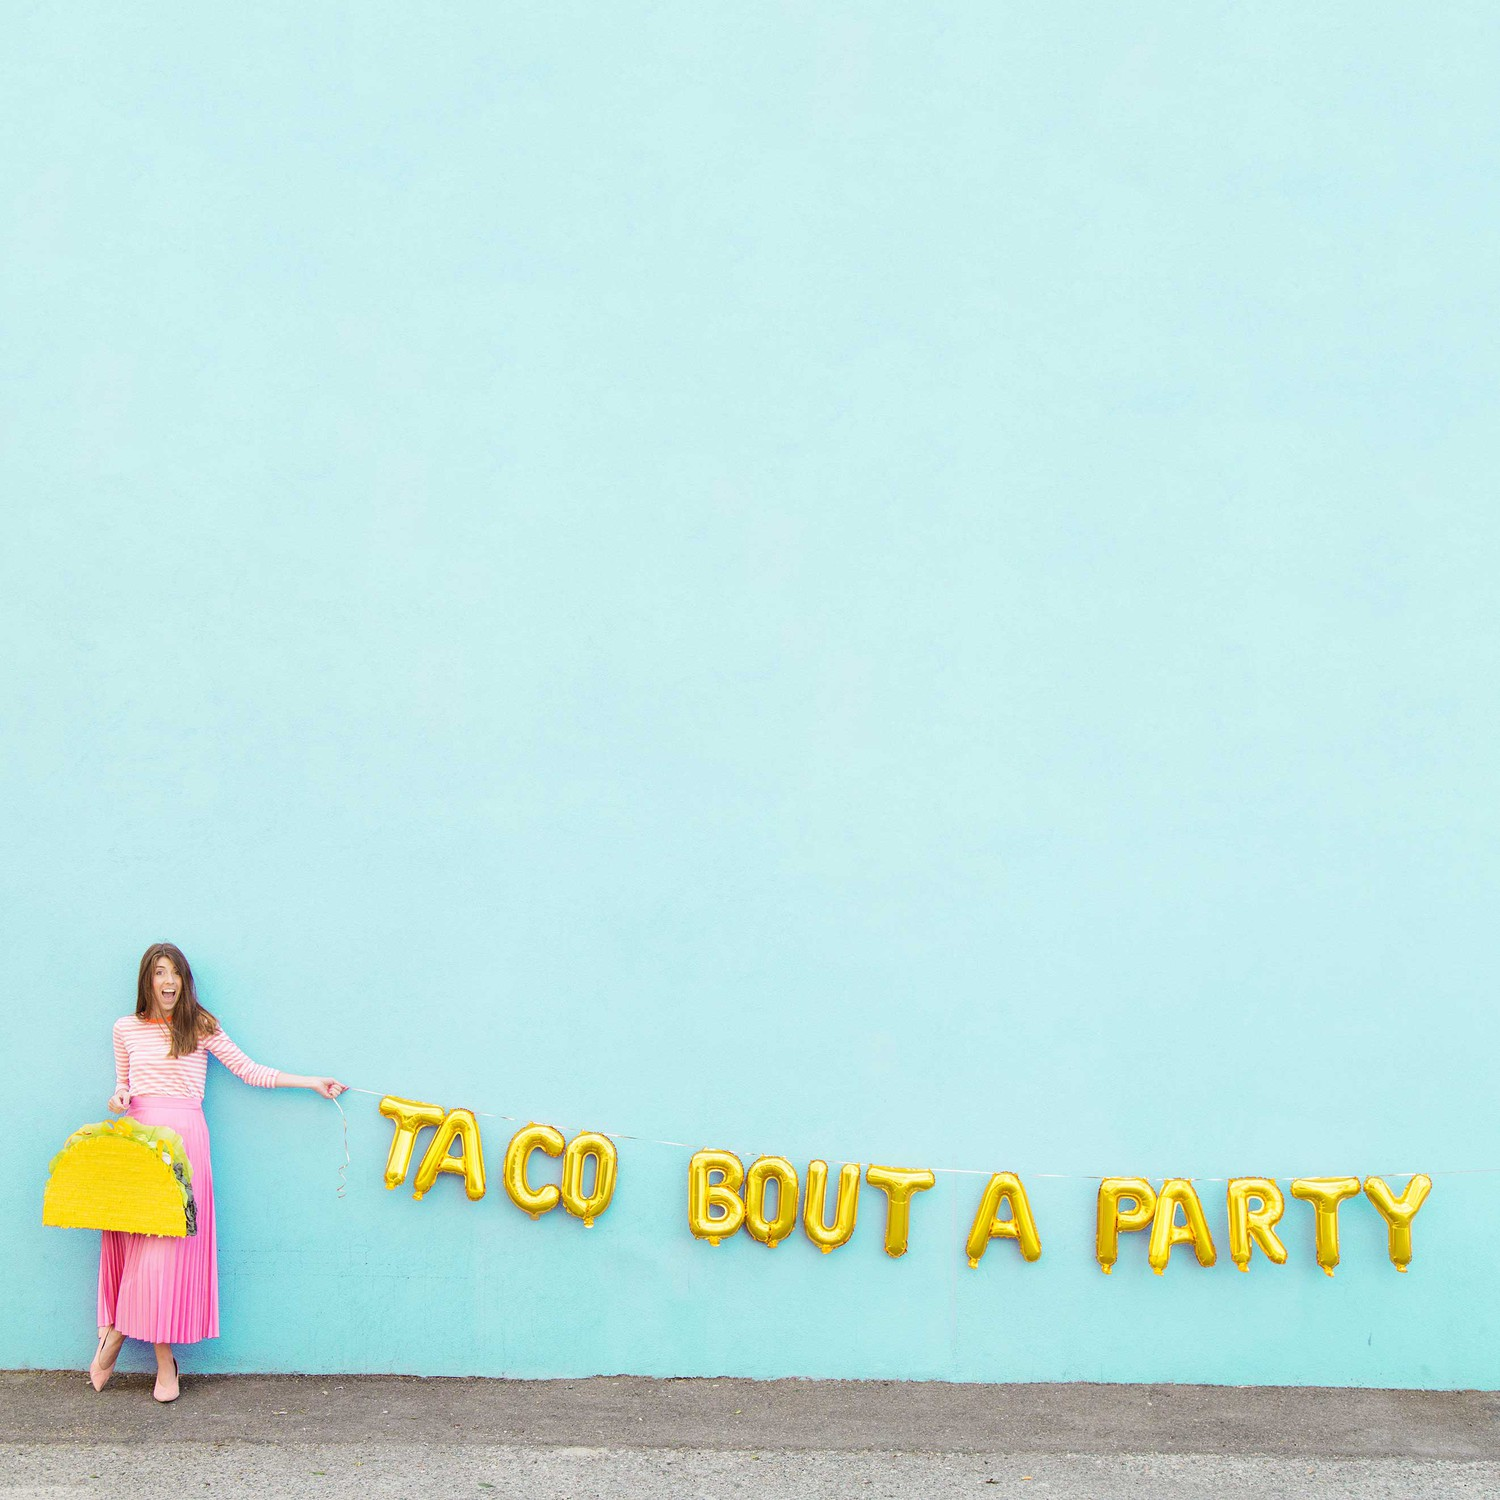 Taco party balloon letters